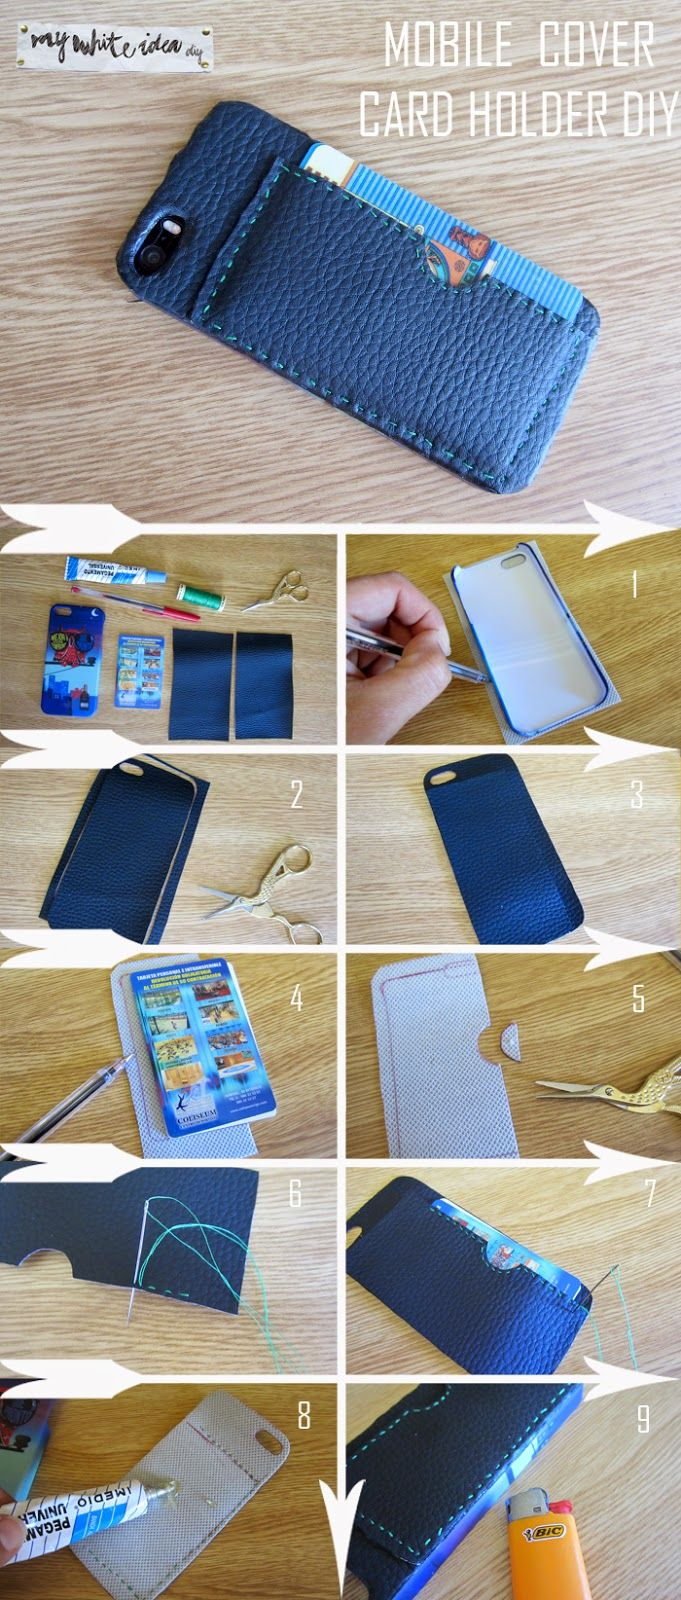 MOBILE COVER CARD HOLDER DIY | MY WHITE IDEA DIY